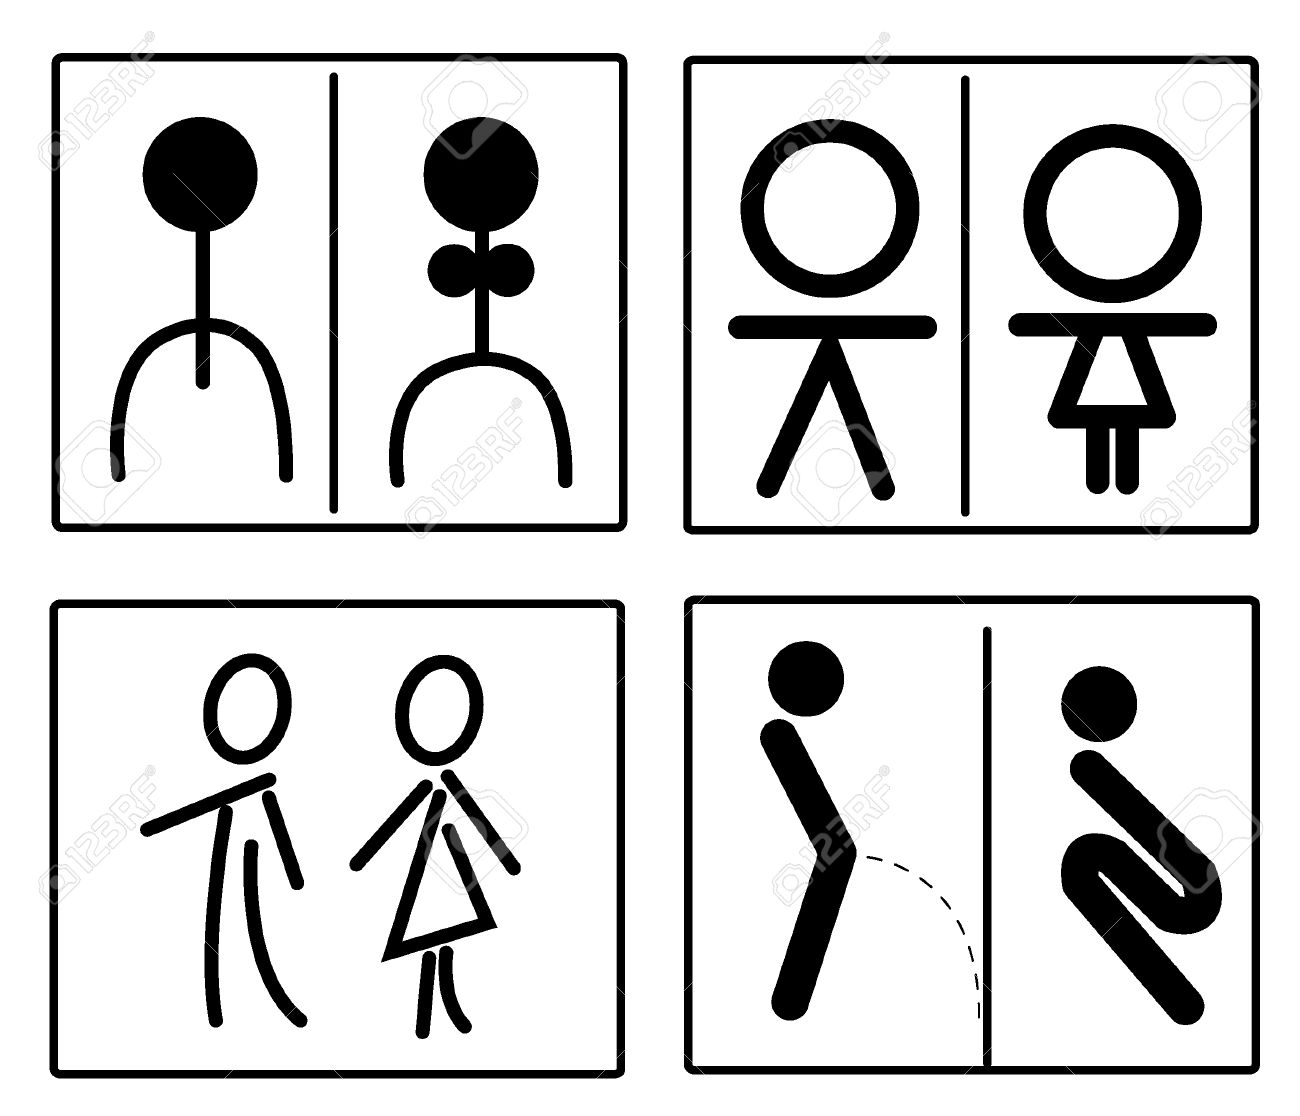 toilet sign set royalty free cliparts vectors and stock rh 123rf com restroom sign vector file restroom sign vector file